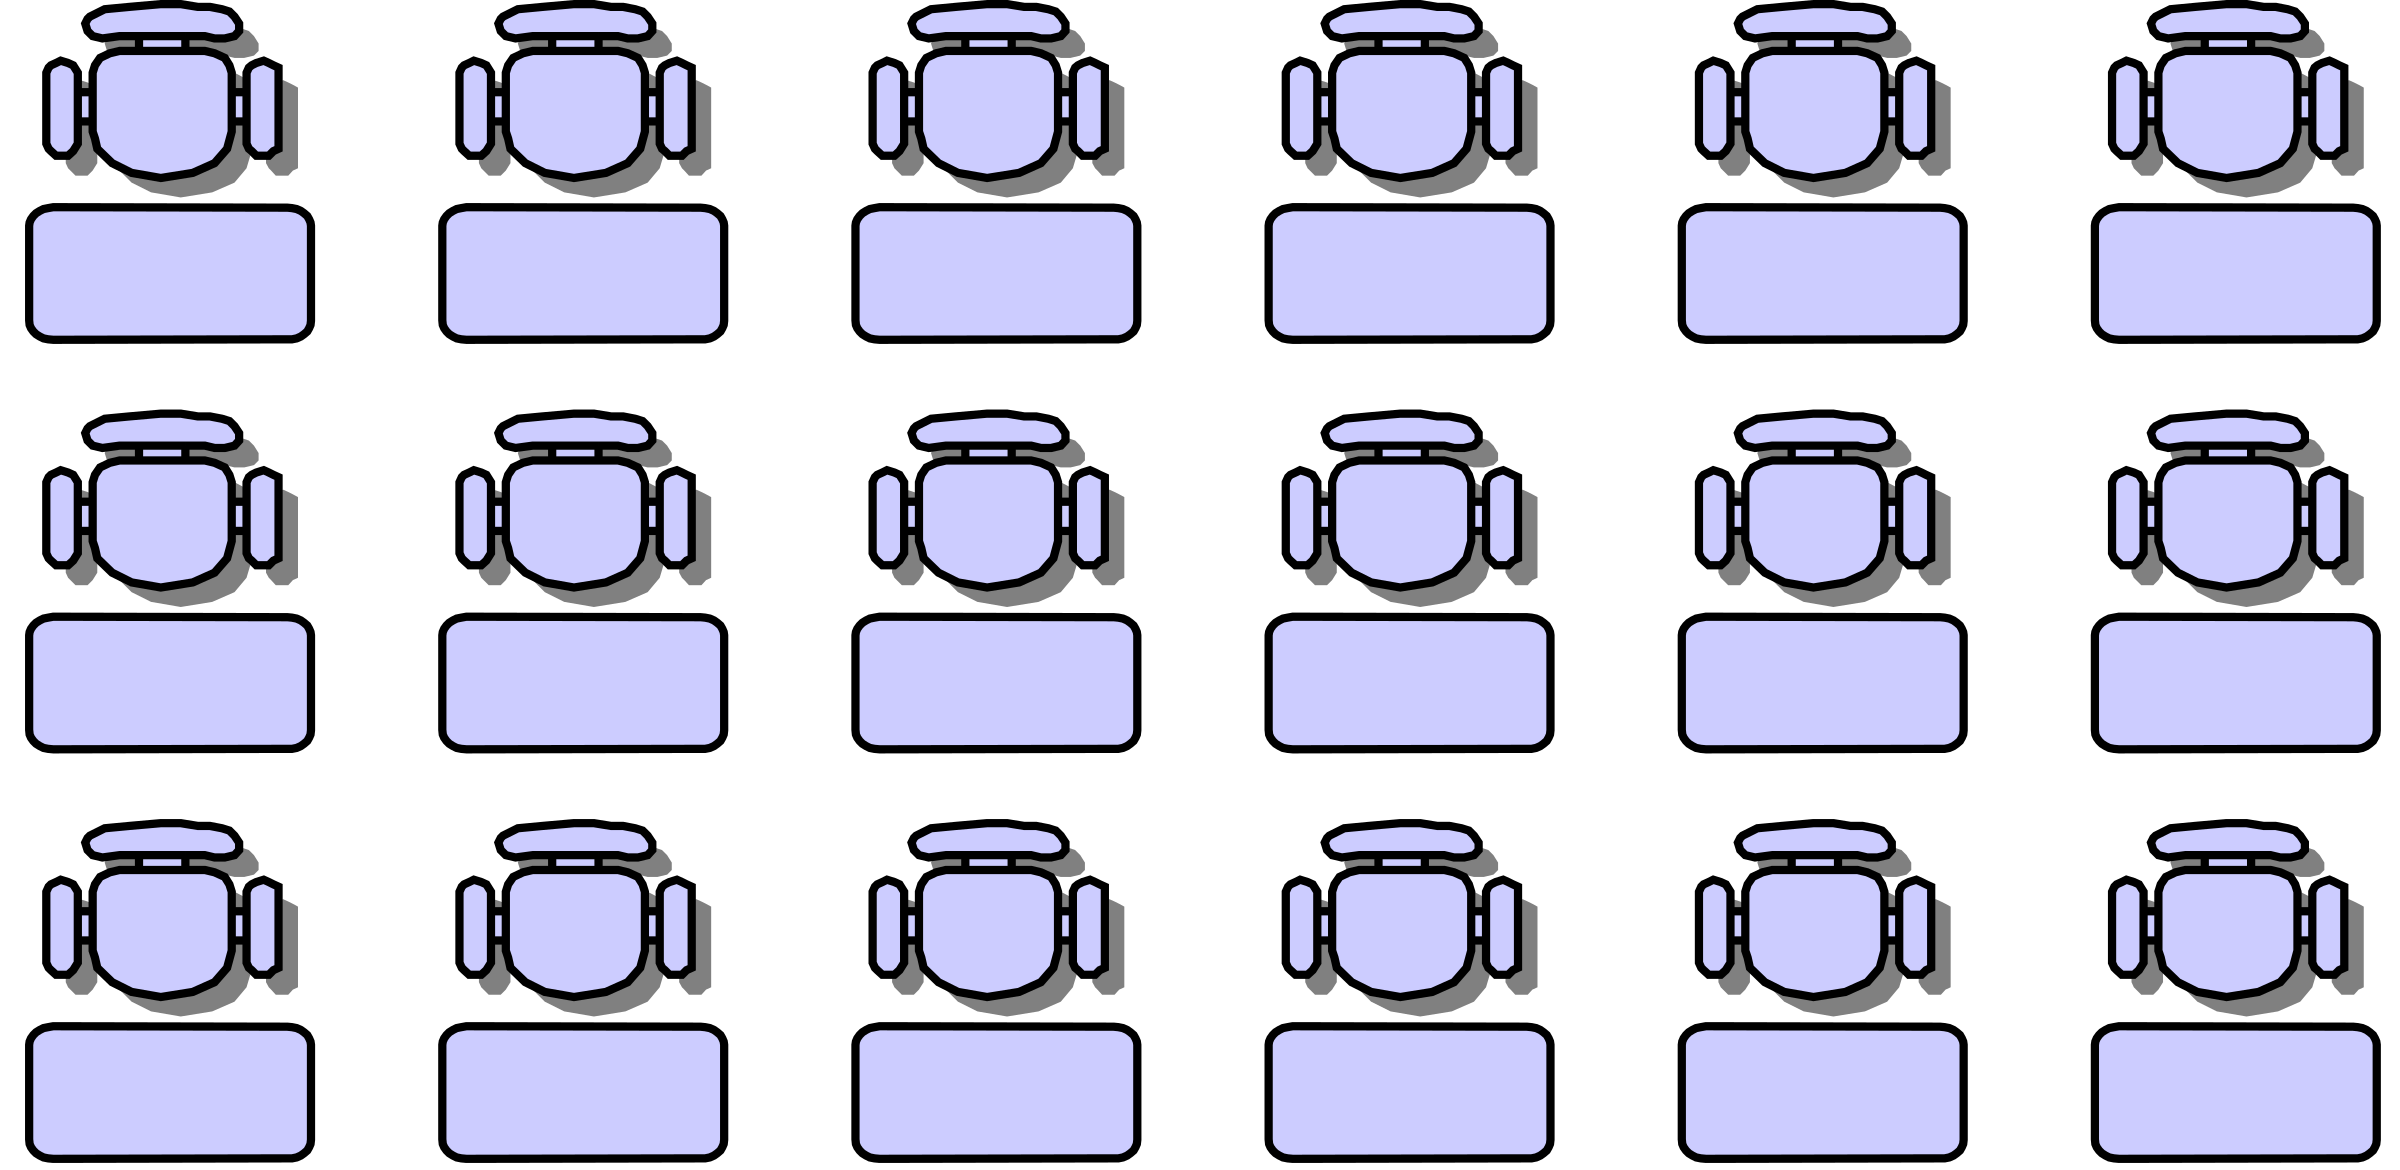 Classroom seat layouts by jabela